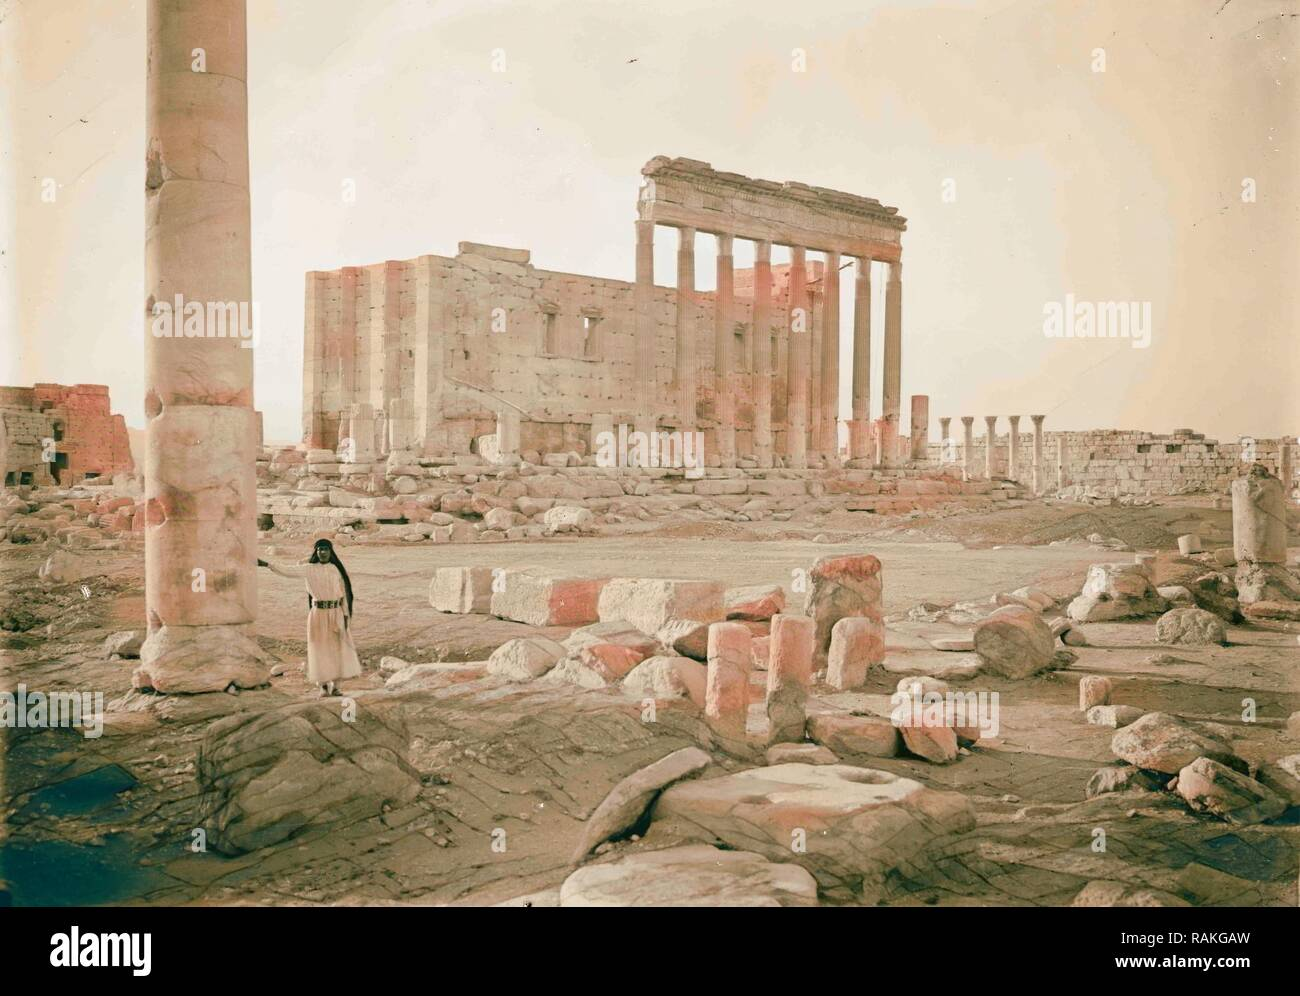 Palmyra. Temple of Baal. Eastern fa ade showing columns of the peristyle. 1920, Syria, Tadmur. Reimagined - Stock Image